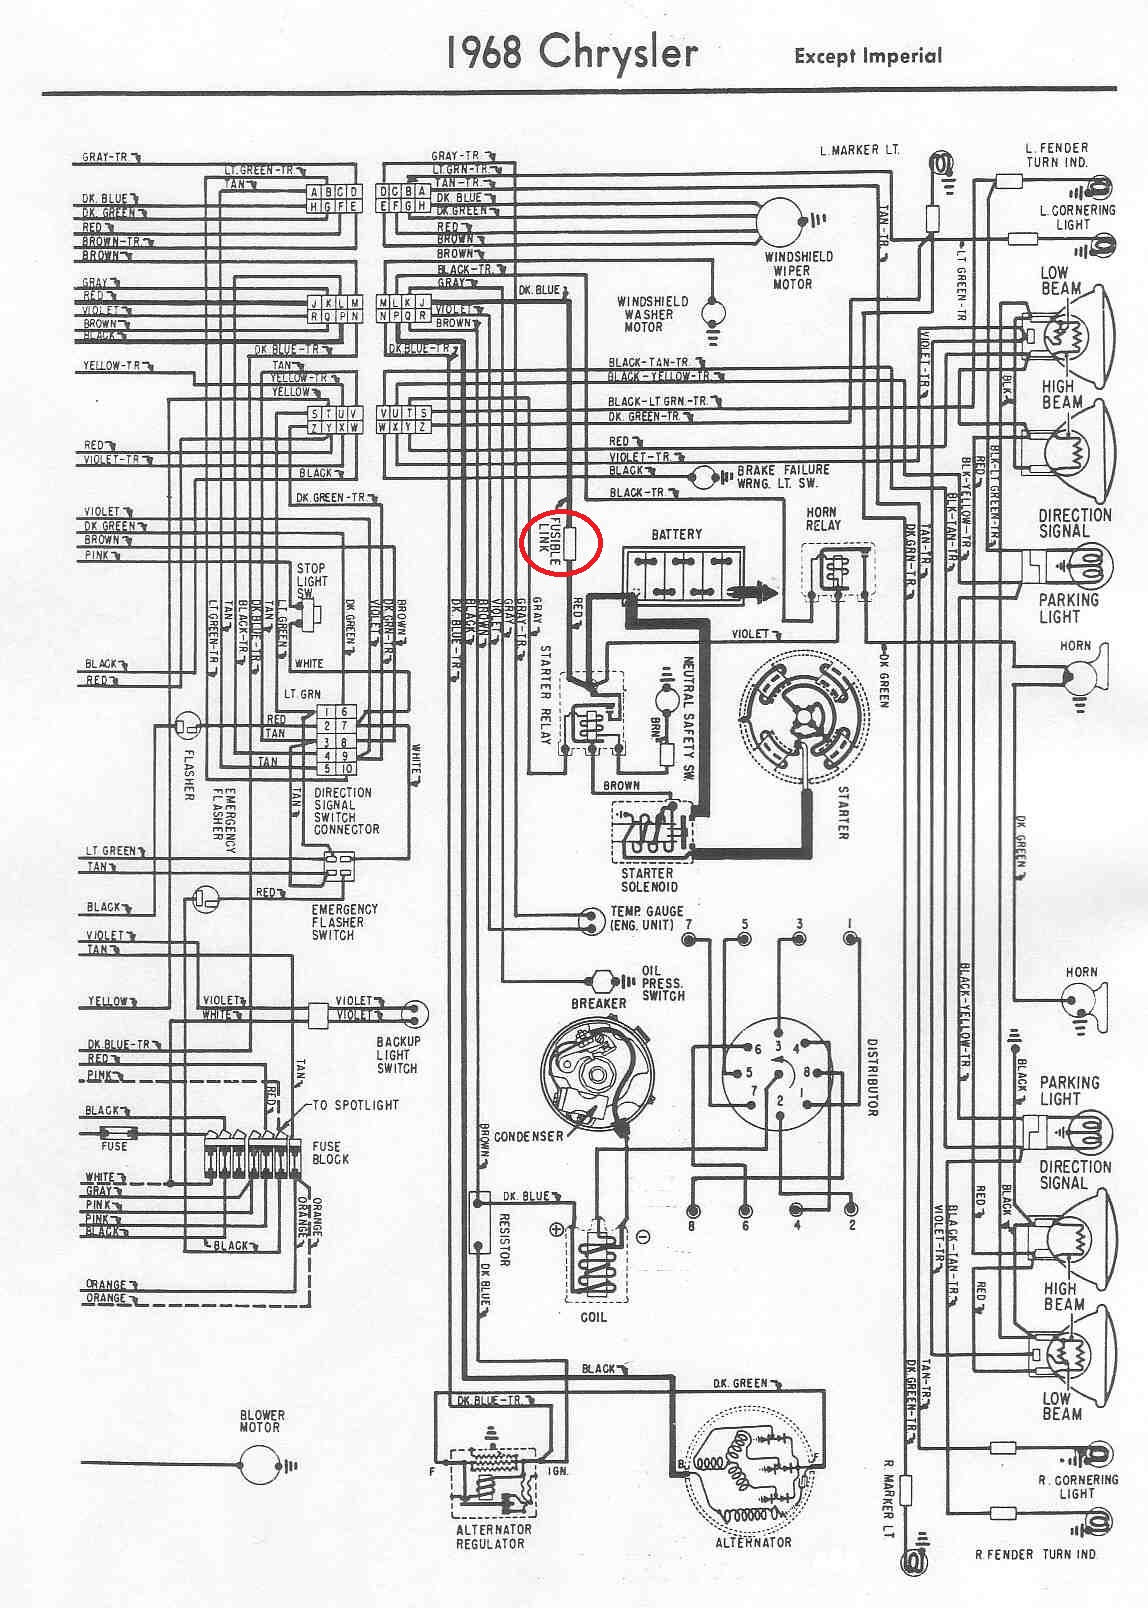 1968 chrysler newport wiring diagram 1968 chrysler newport wiring diagram